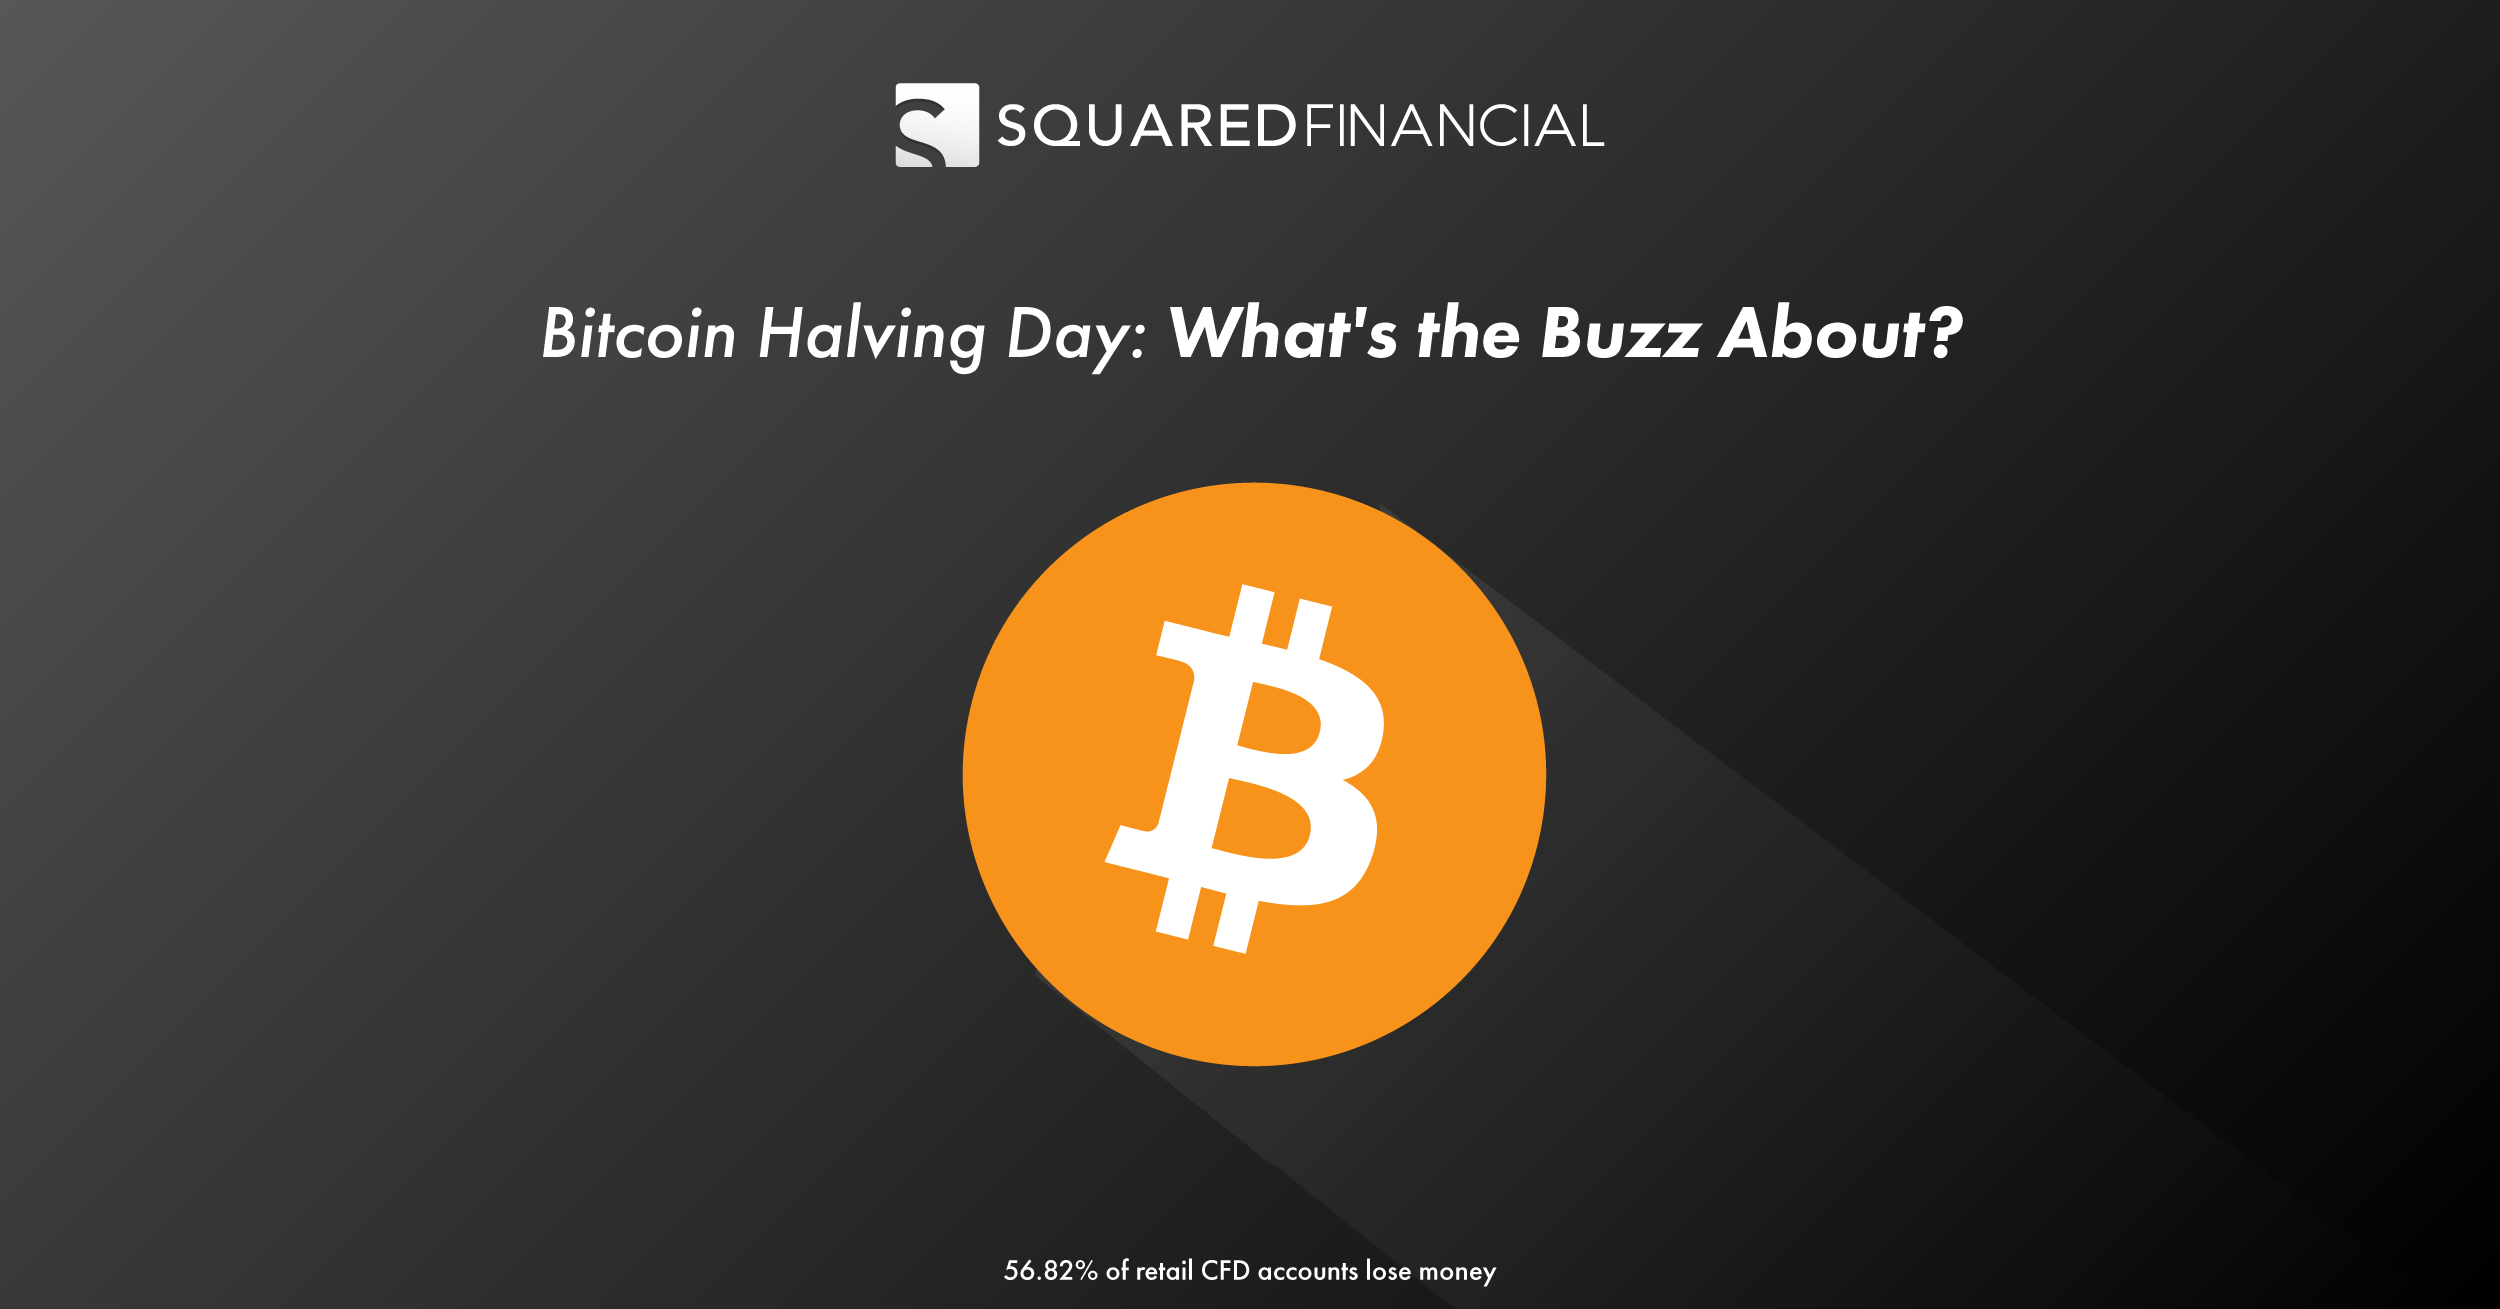 Bitcoin Halving Day: What's the Buzz About?